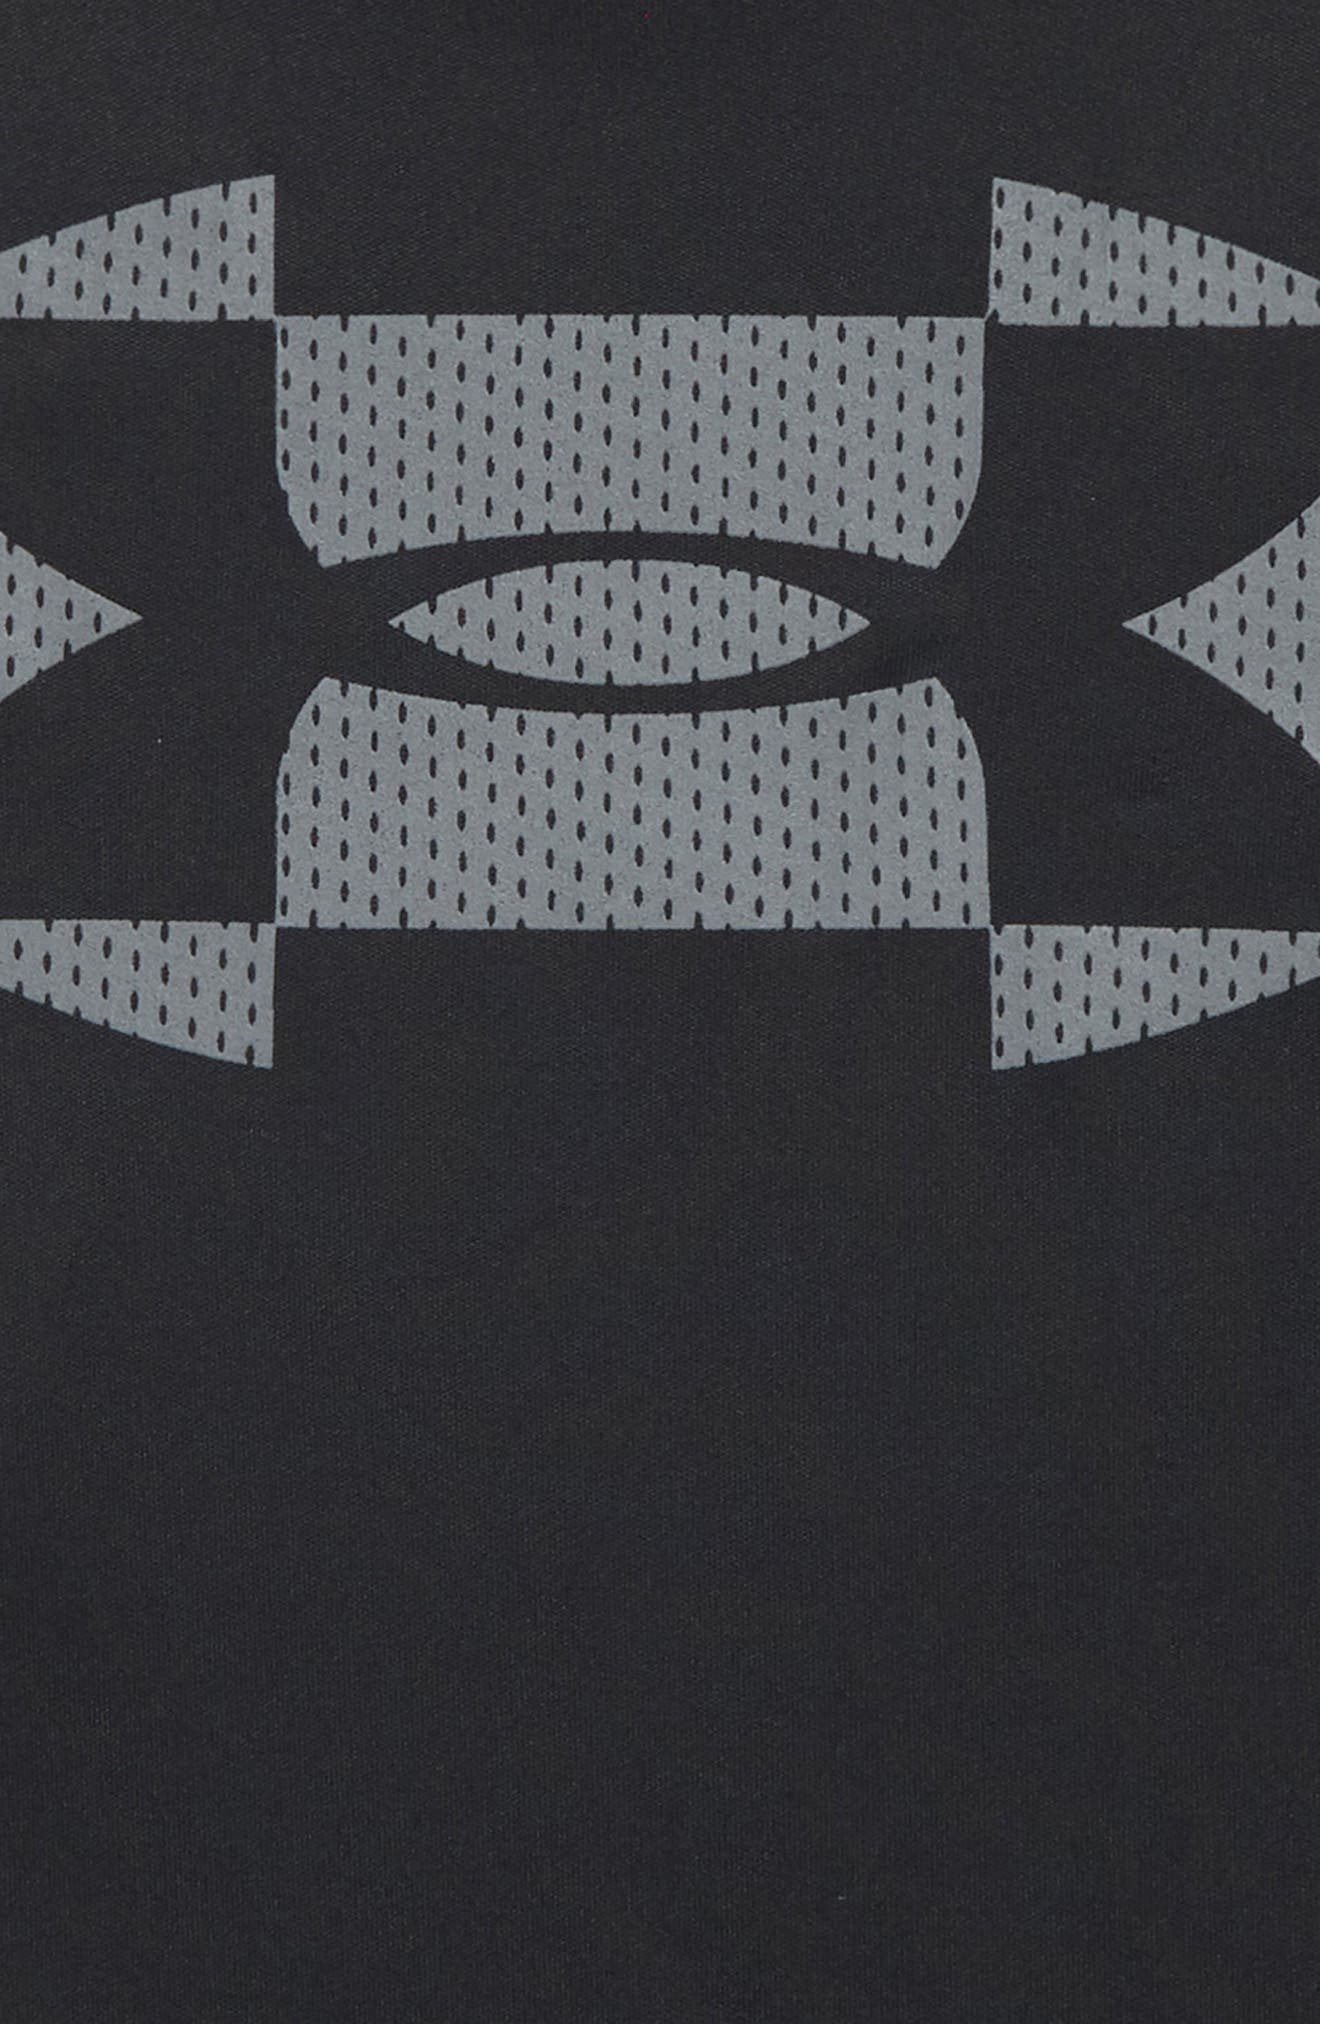 UNDER ARMOUR,                             Tech HeatGear<sup>®</sup> Tank,                             Alternate thumbnail 2, color,                             001